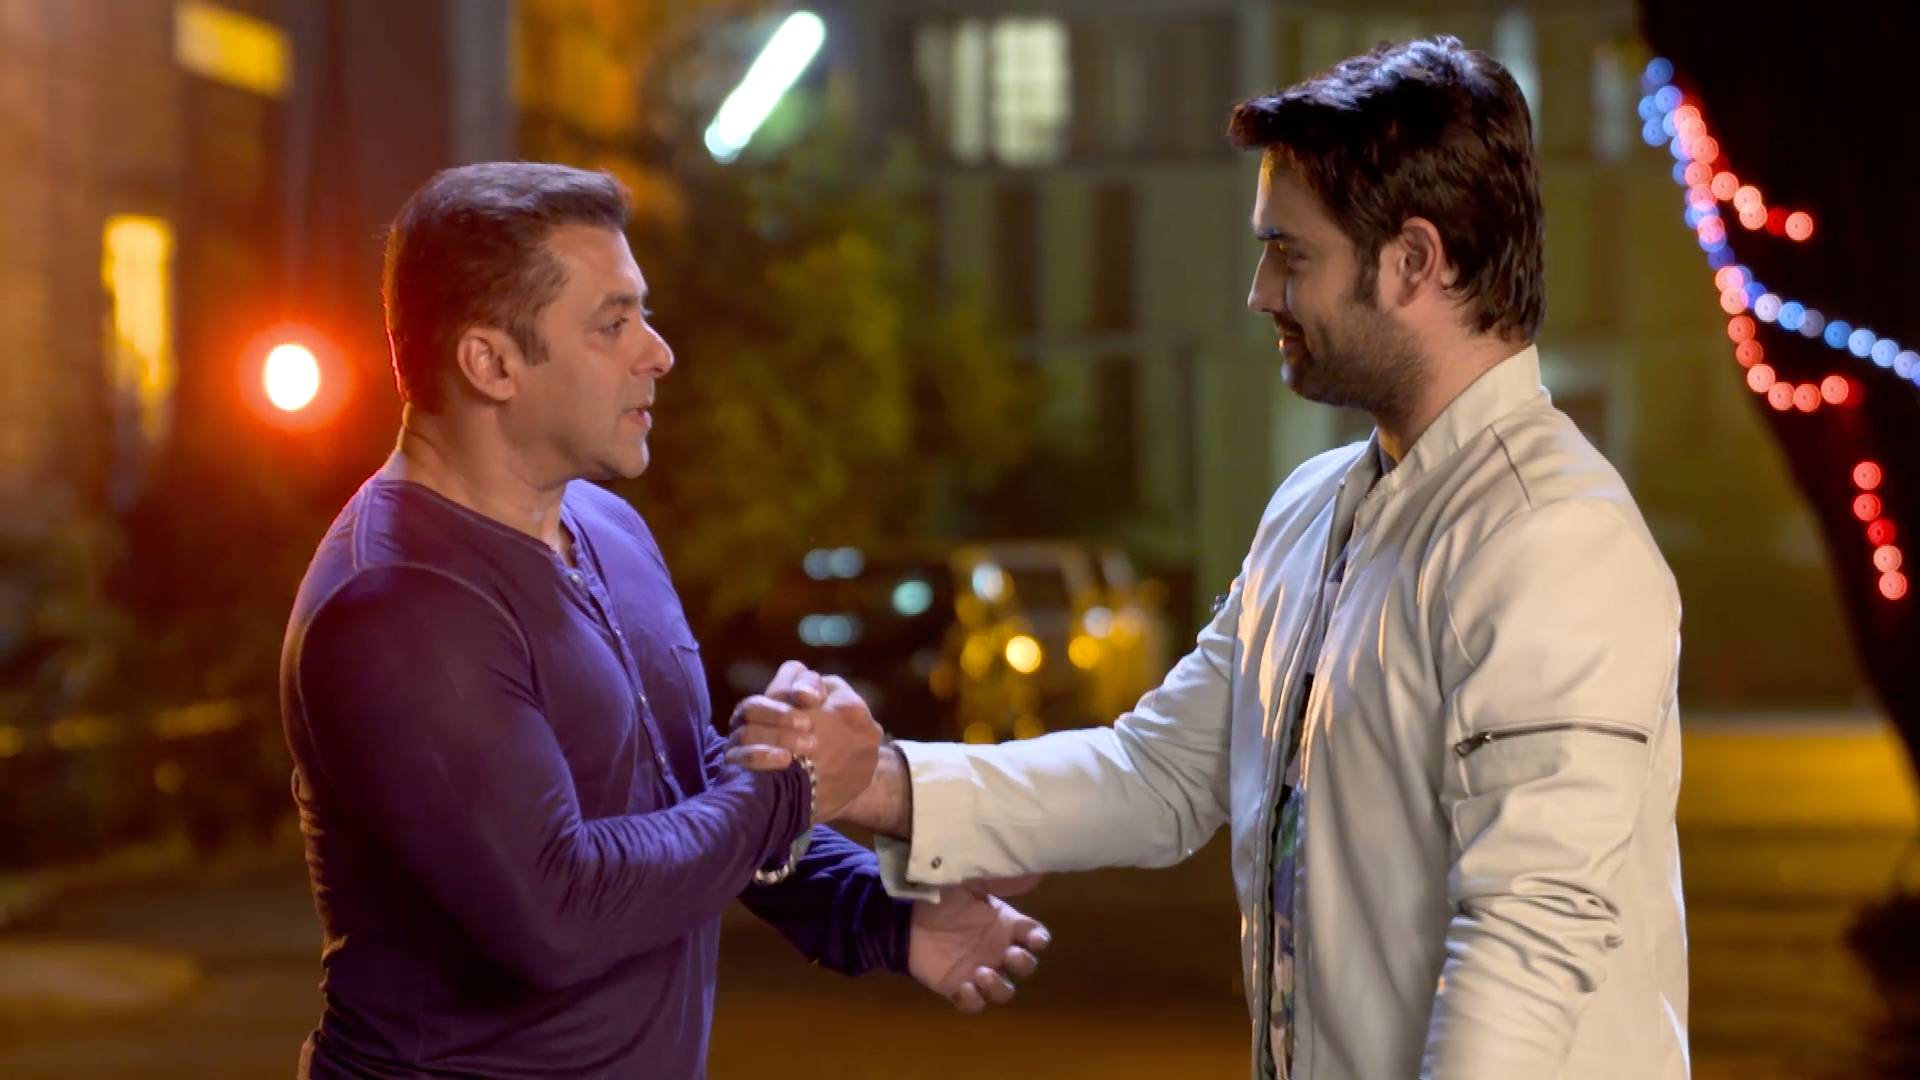 Salman meets Harman on Shakti!